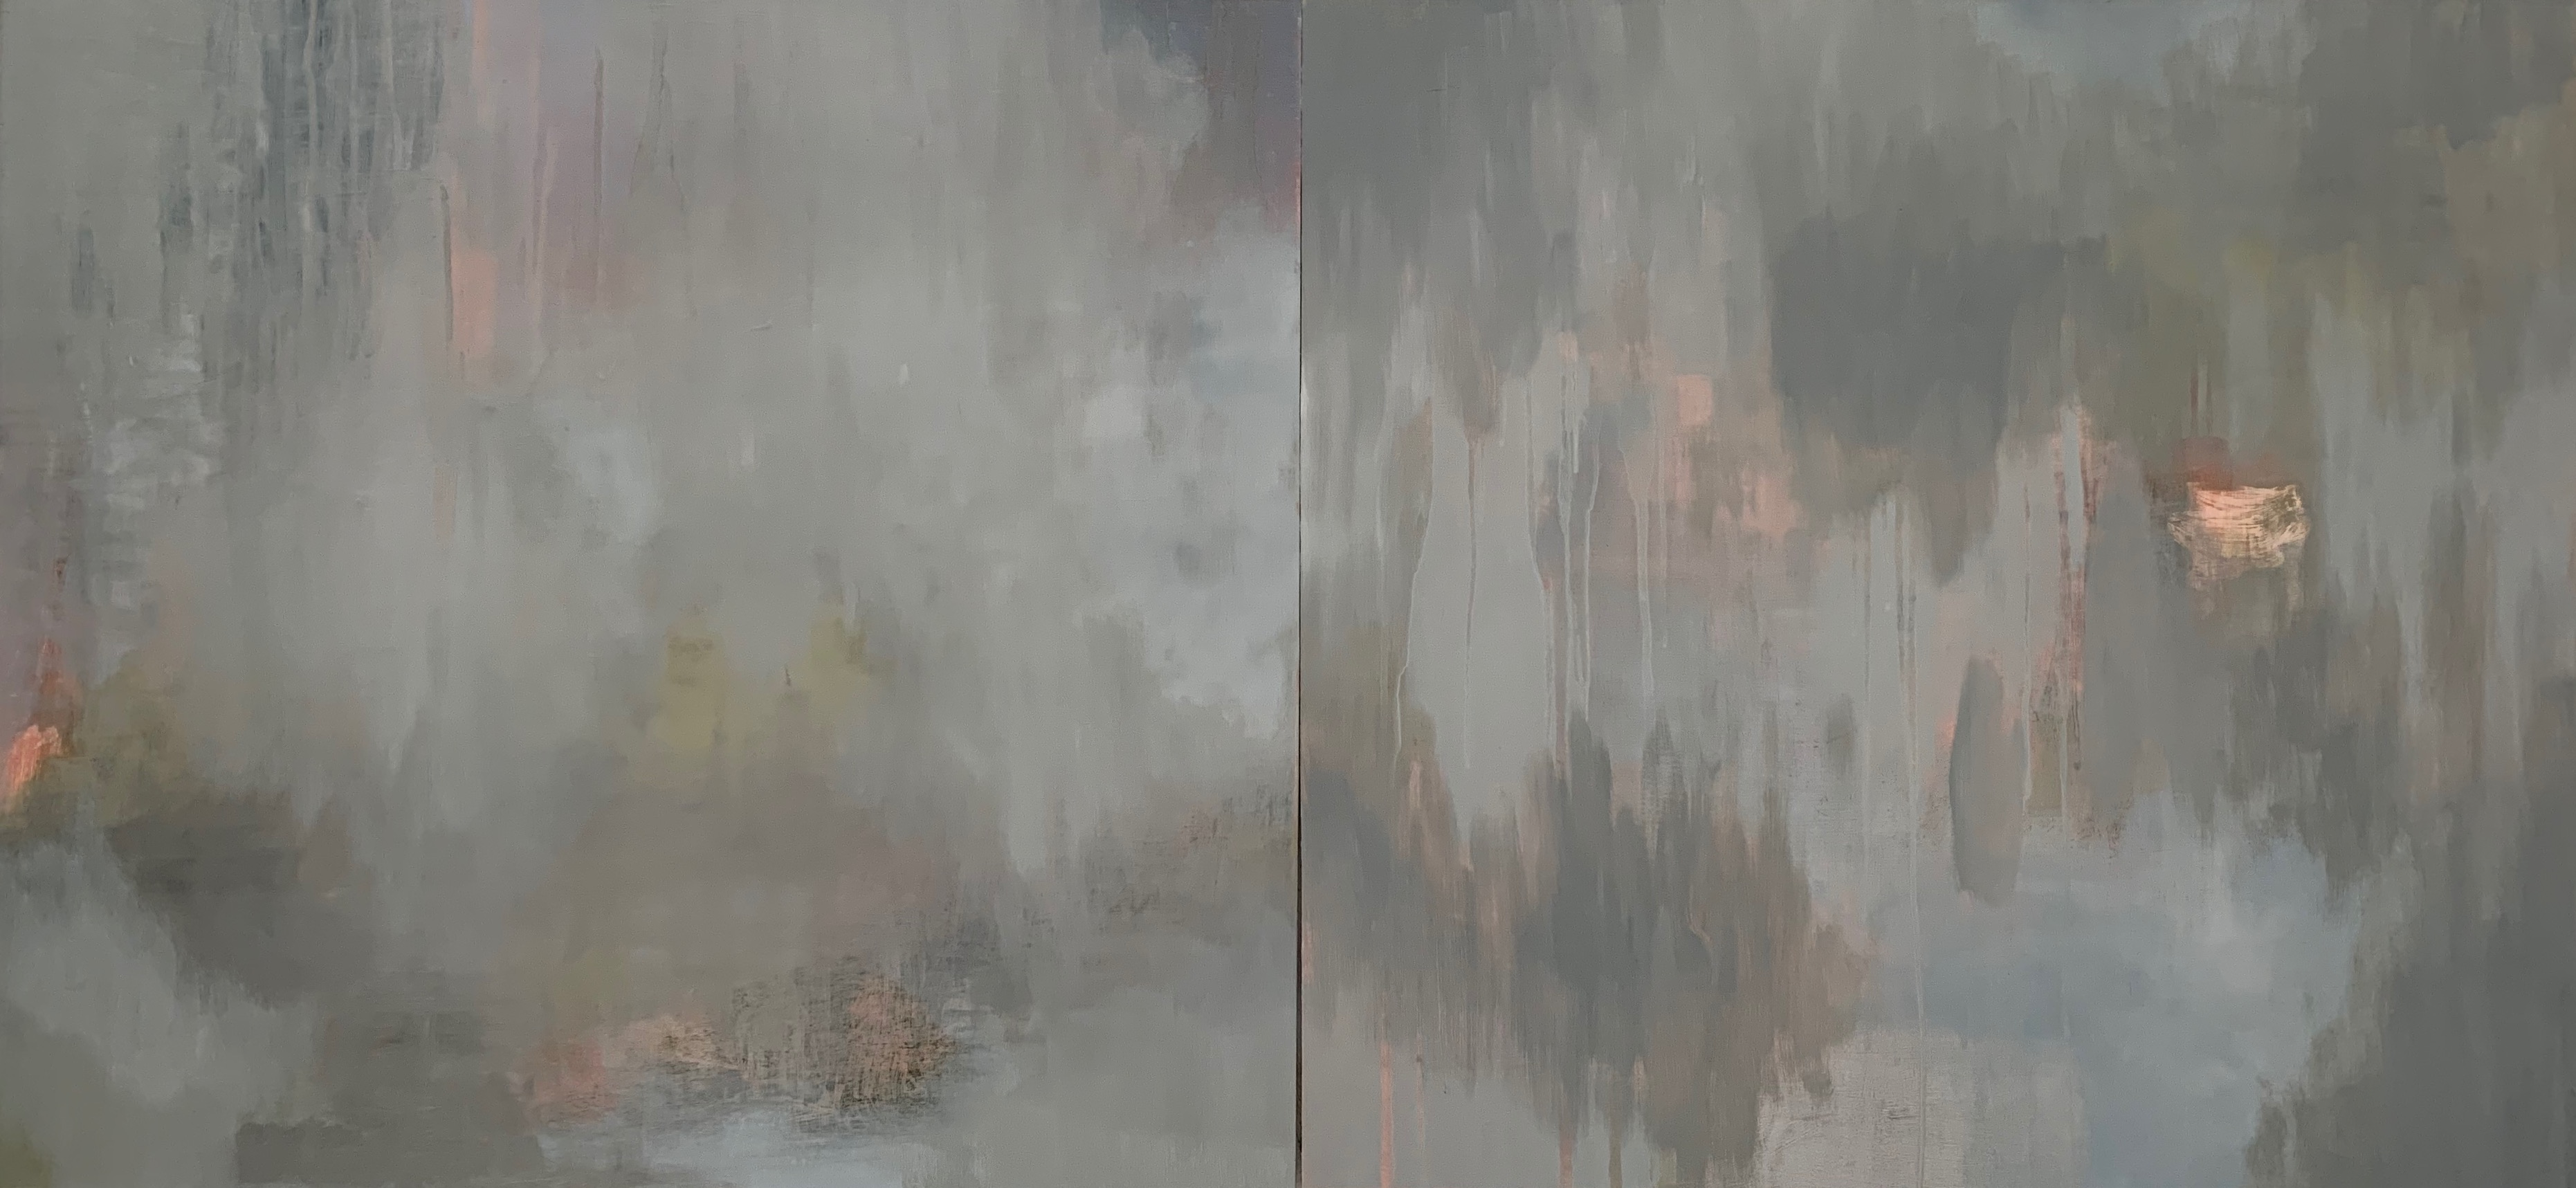 Definite Possibilities_07 Diptych 65x140